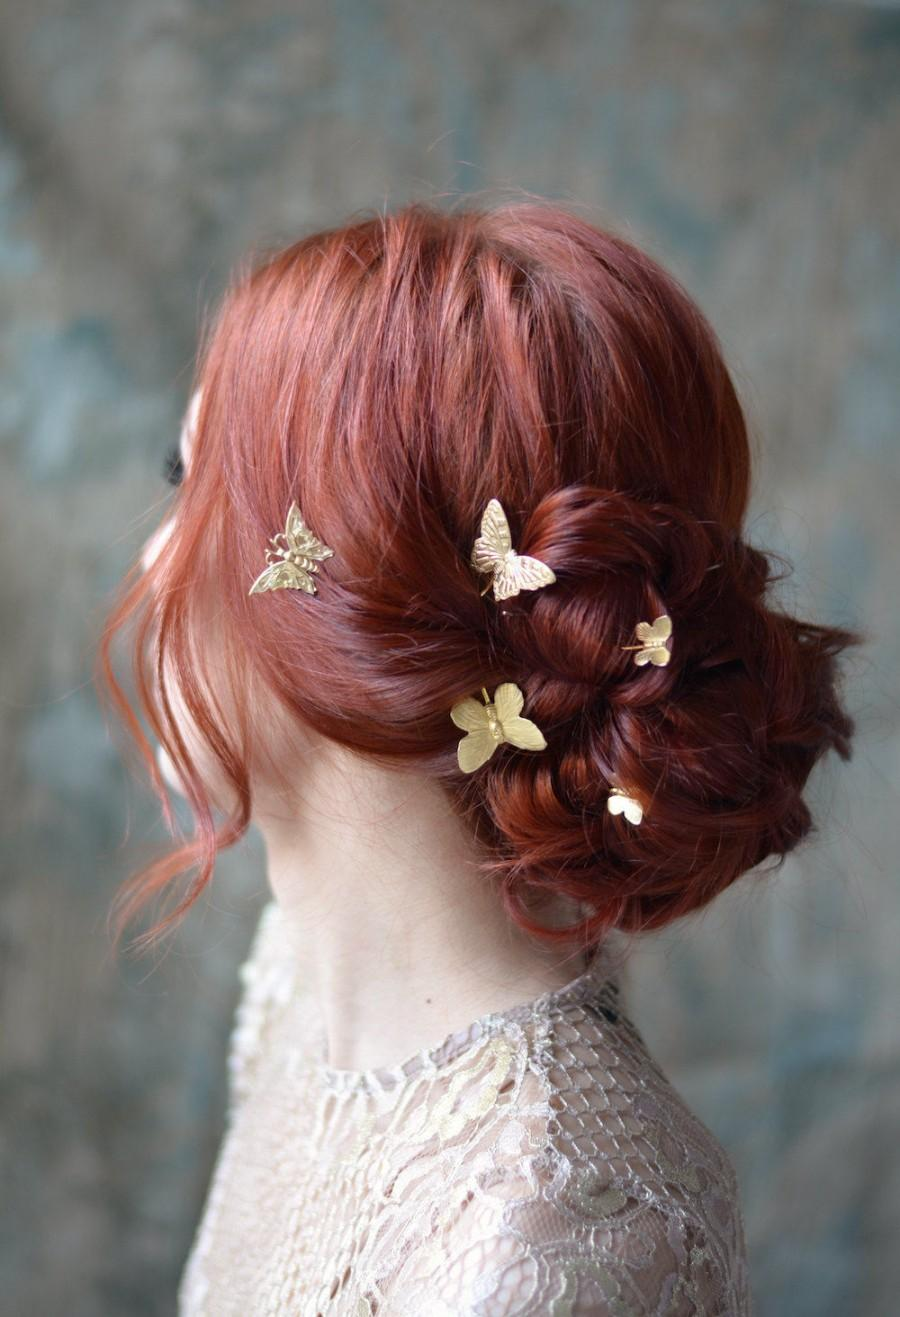 Erfly Bobby Pins Golden Hair Gilded Clips Clip Set Gold Adornments Bridal Wedding